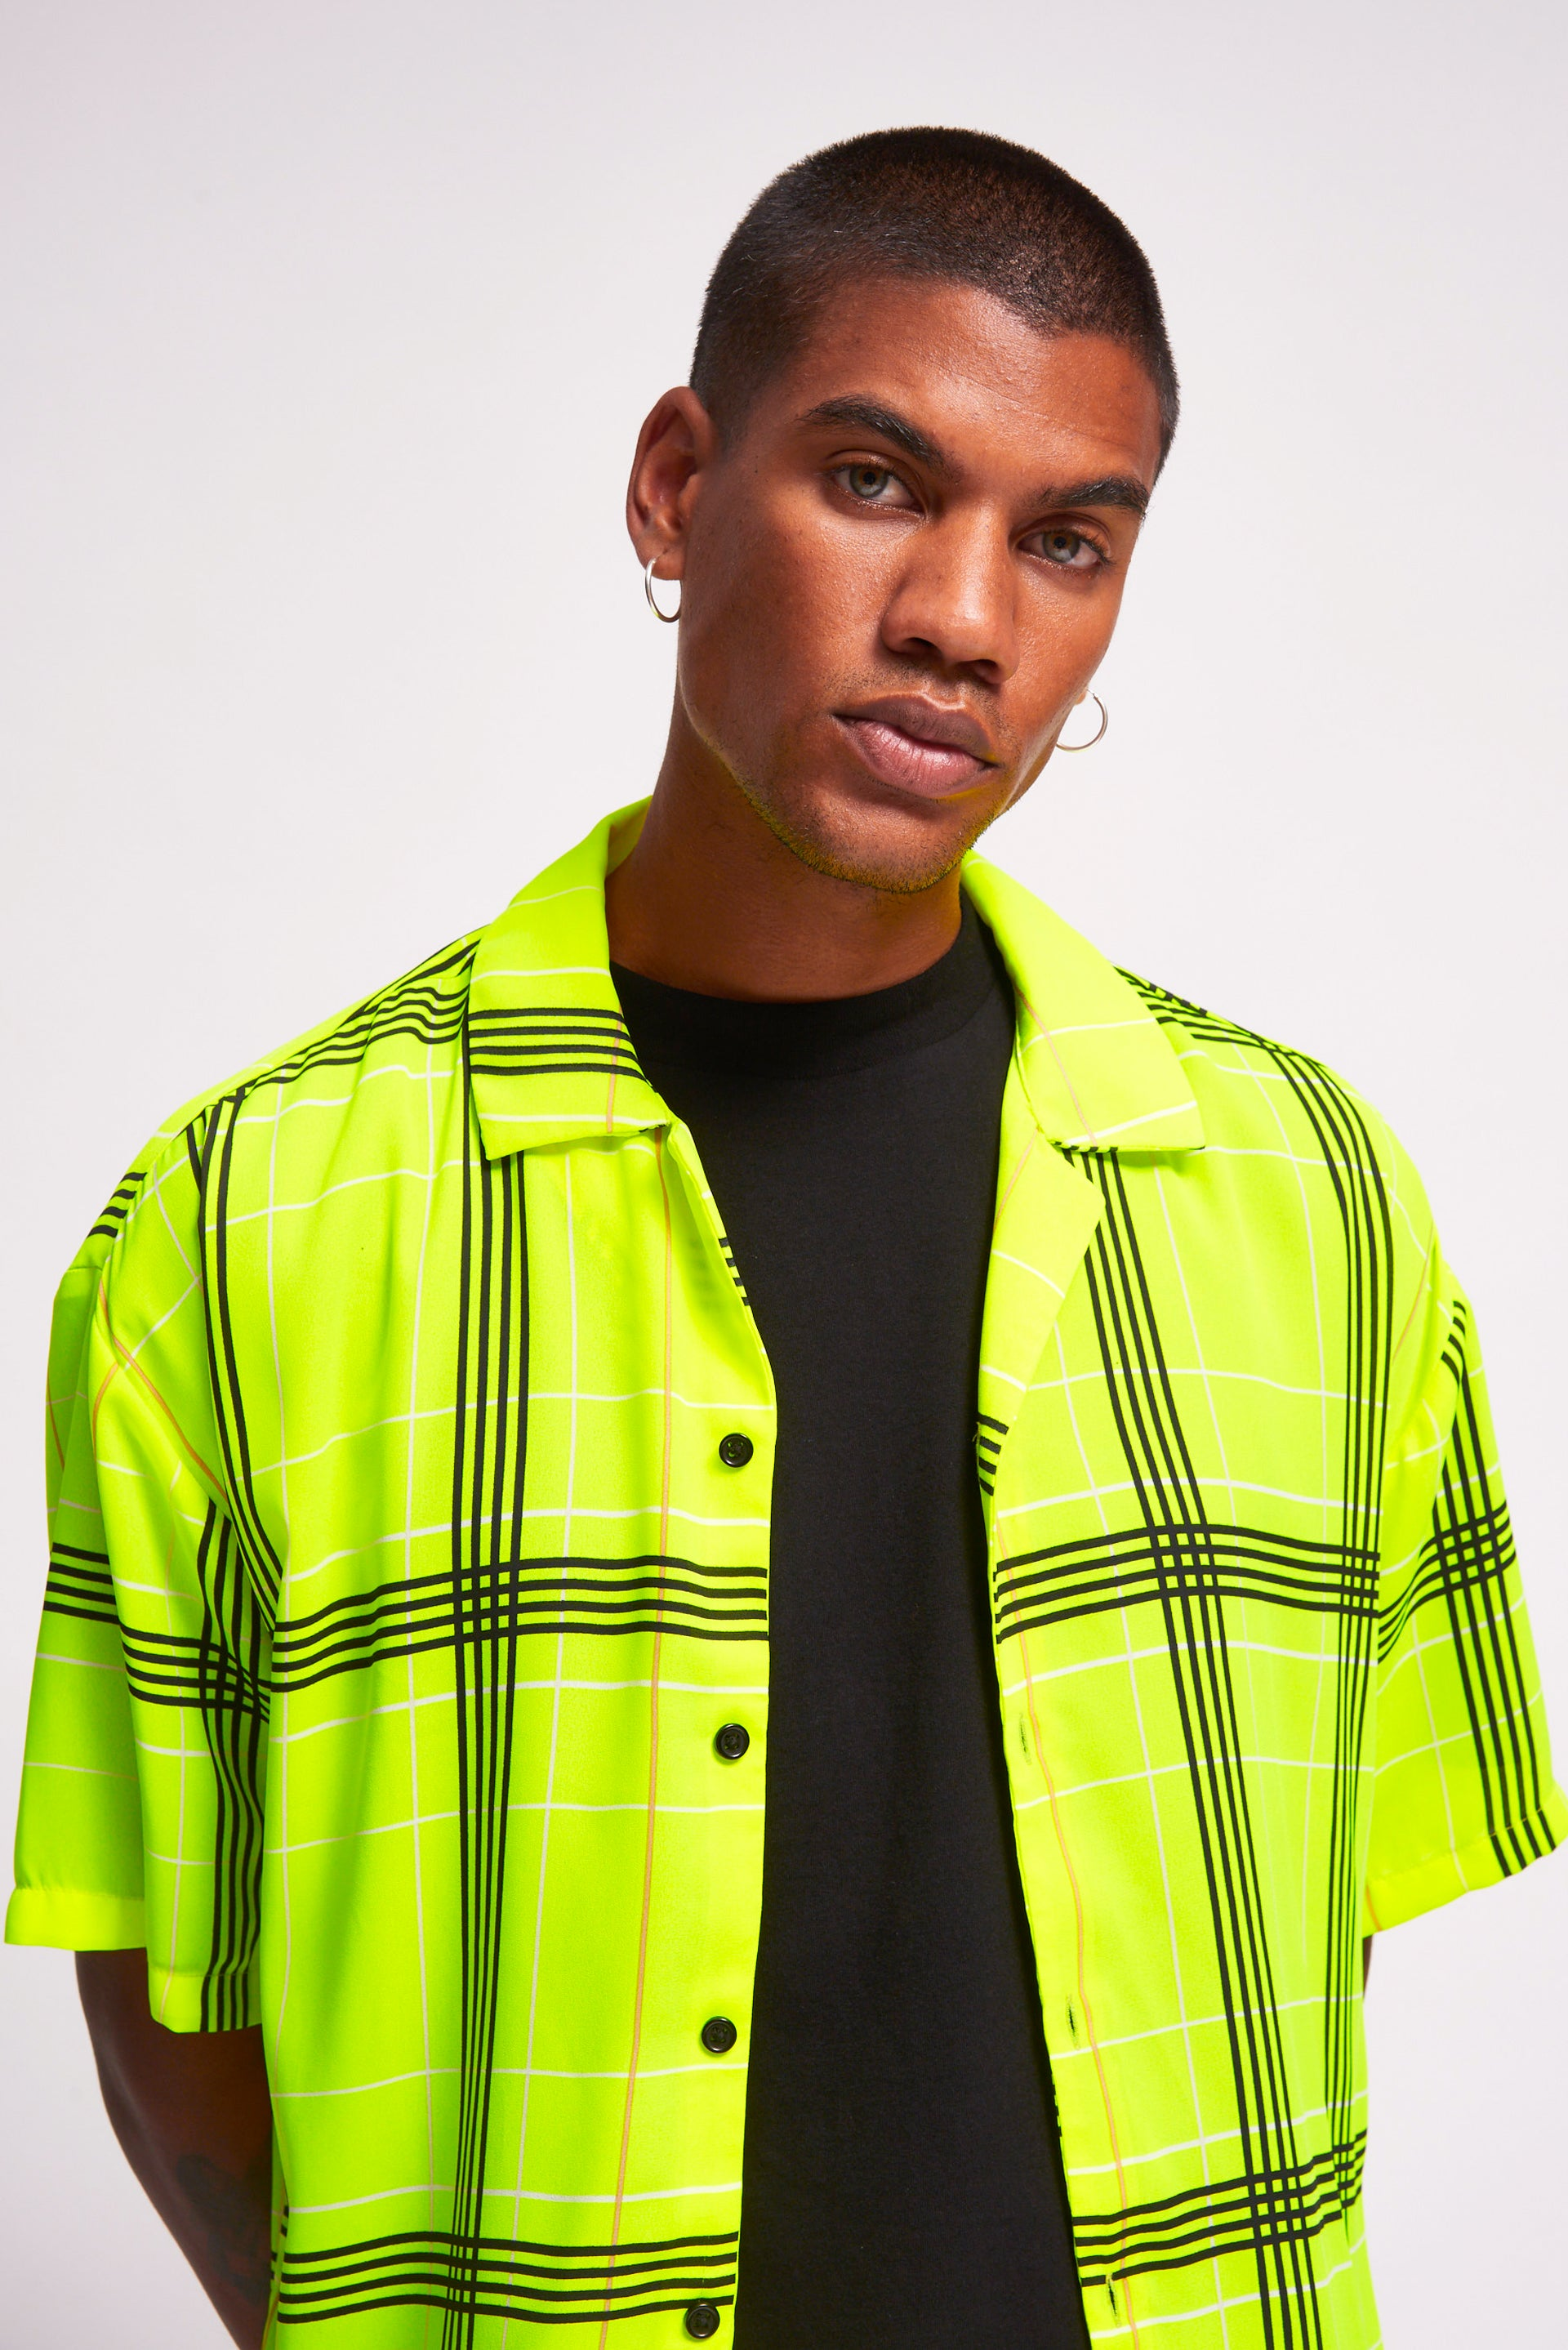 Neon Yellow & Black Check Short Sleeve Shirt